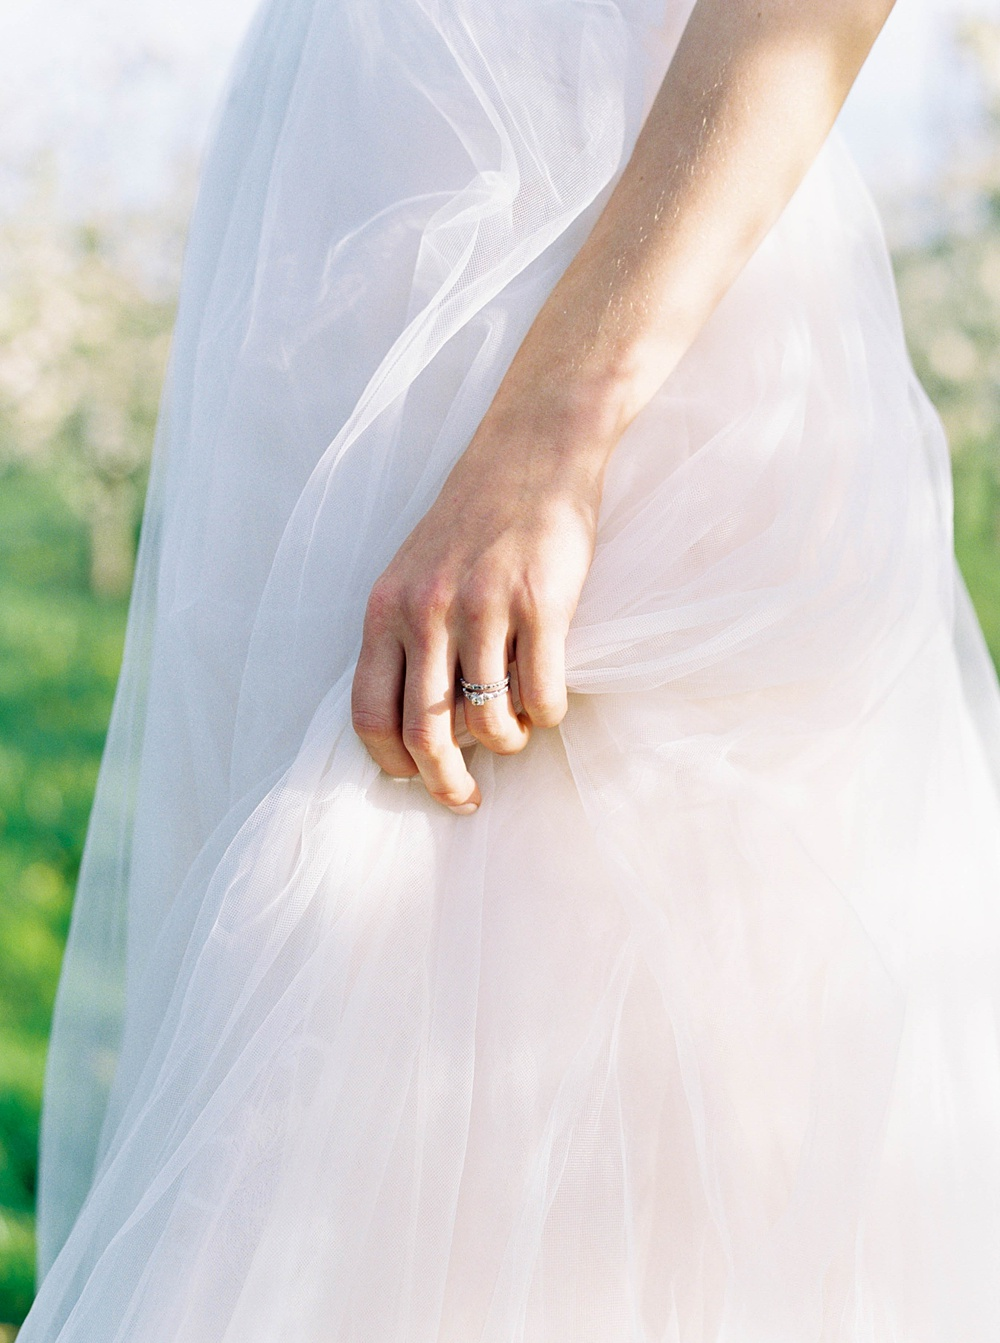 Closeup of bride holding wedding dress